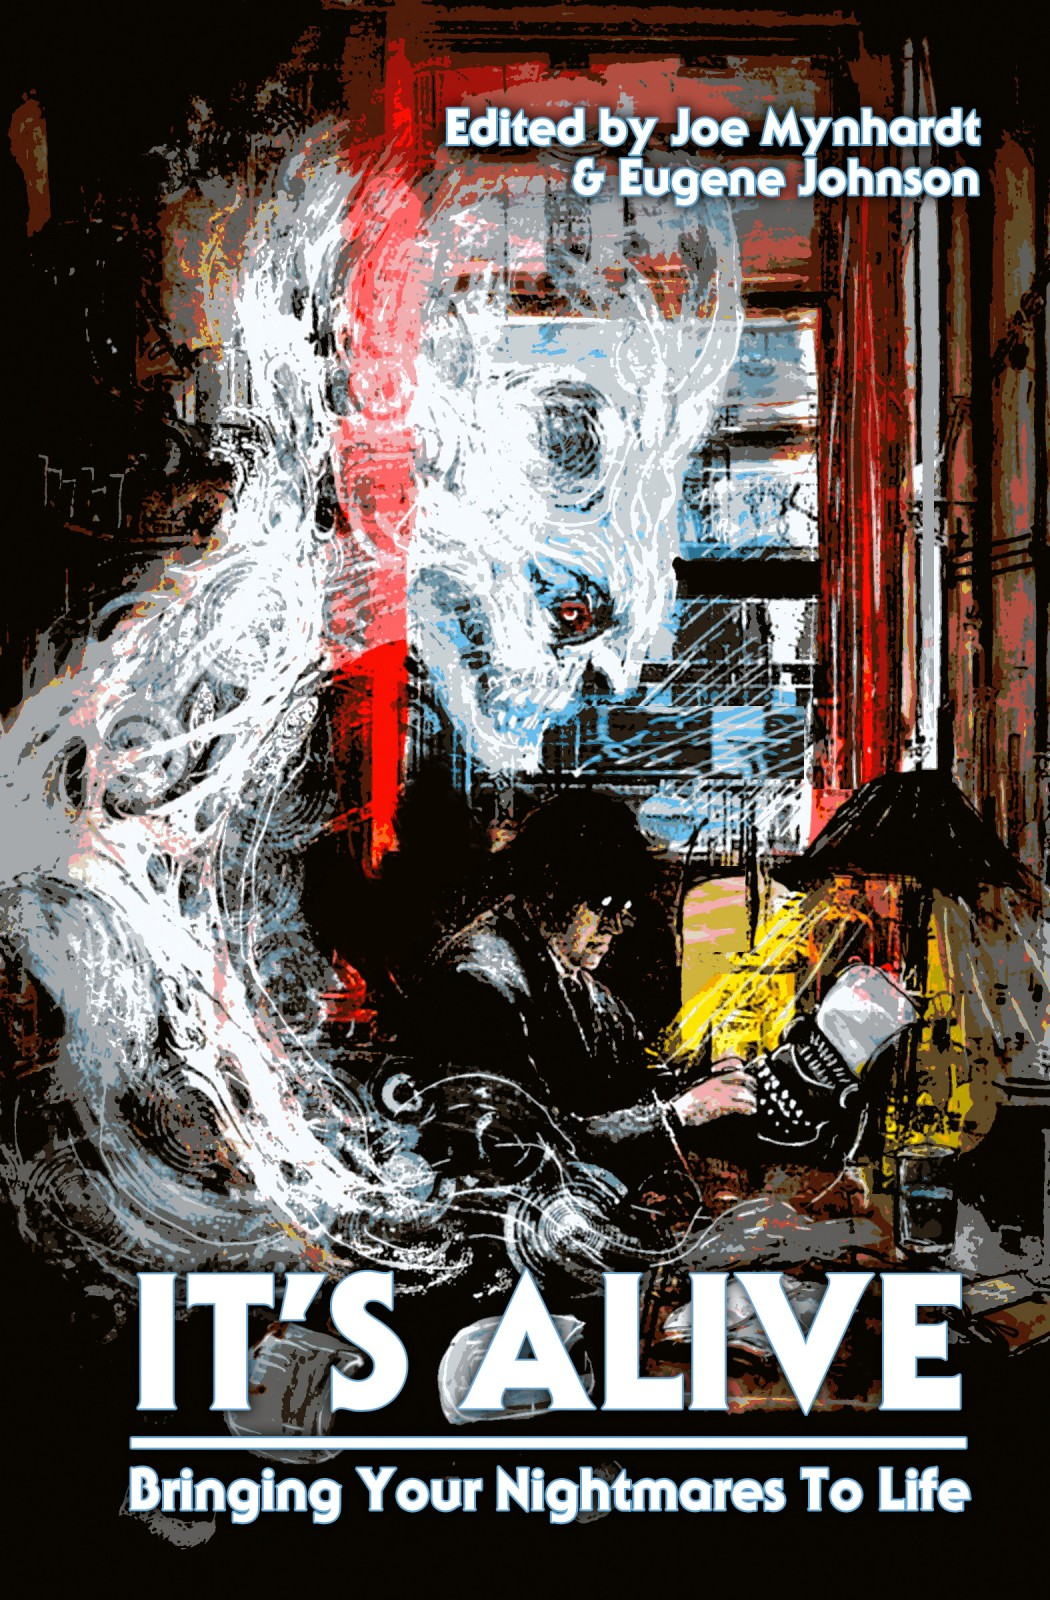 Its-Alive-Cover-Art-official-525x800@2x.jpg